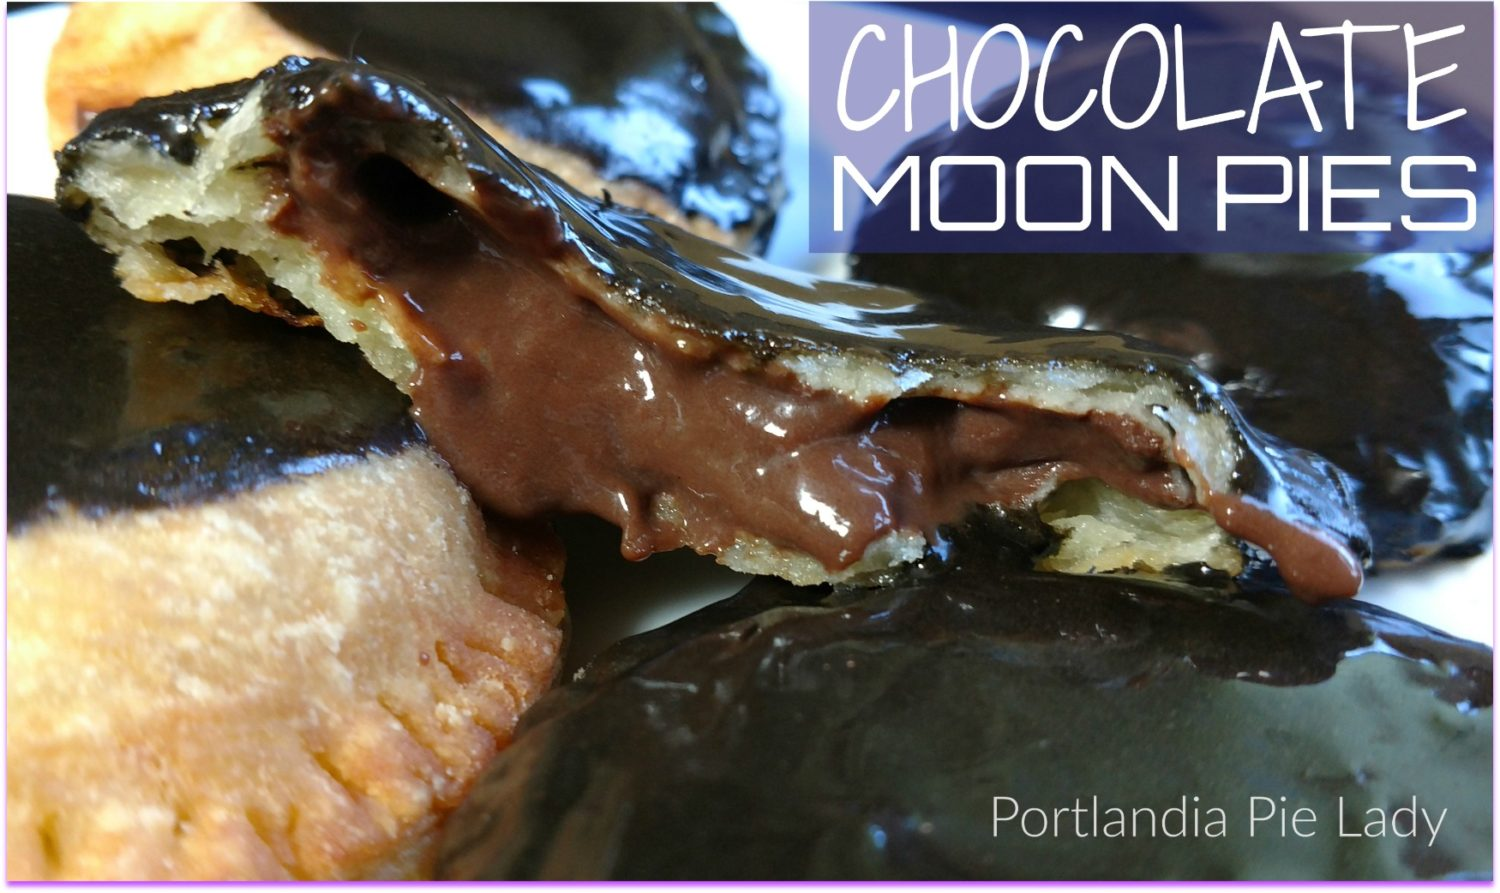 Chocolate Moon Hand Pies: Creamy smooth rich-tasting chocolate filling in a perfect buttermilk flaky crust with just the right amount of glaze, just in time for the solar eclipse!